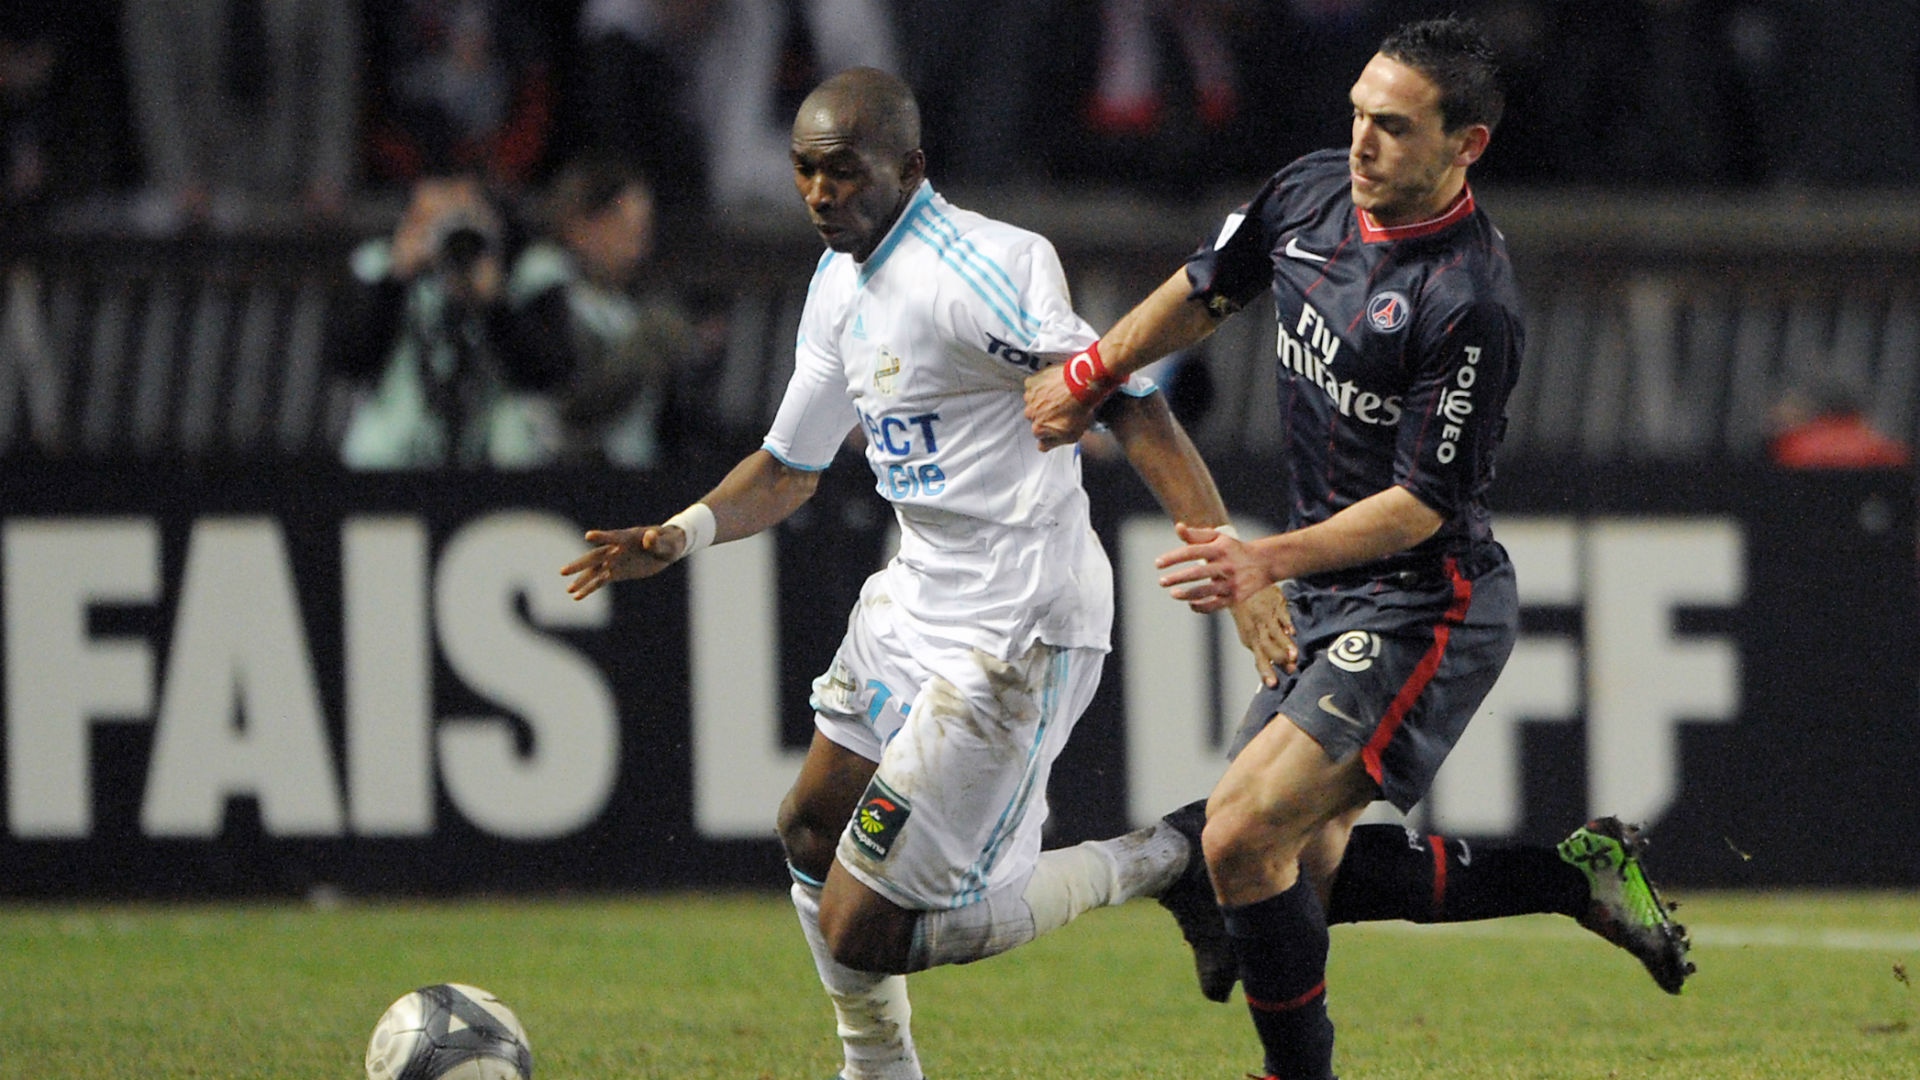 Five red cards as Marseille beat PSG in bad-tempered game